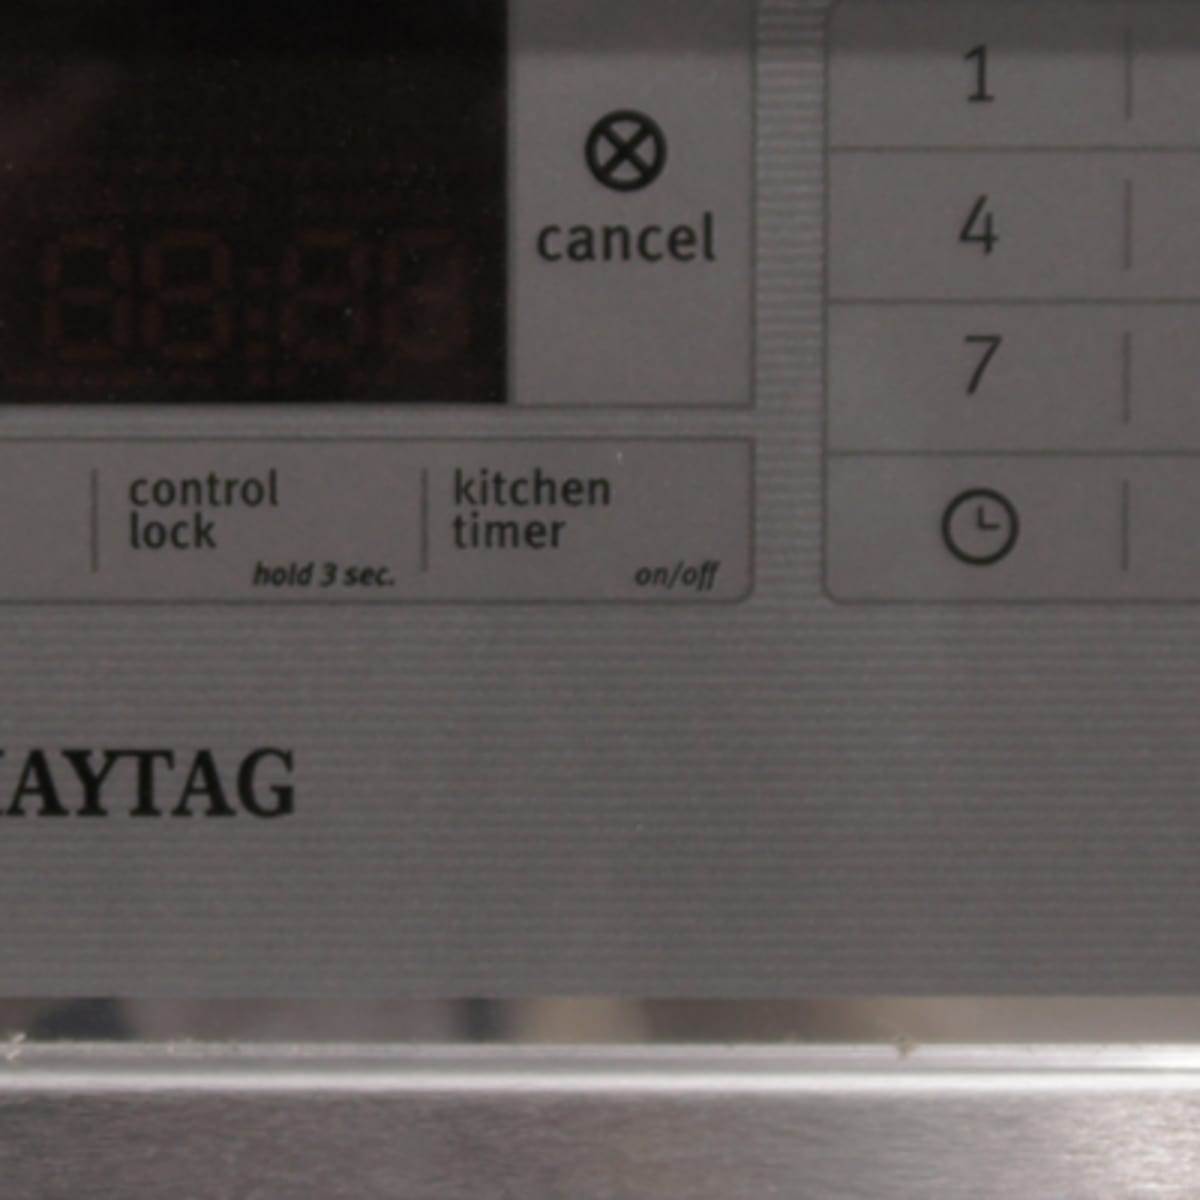 Maytag MER8880AS Freestanding Electric Range Review - Reviewed Ovens